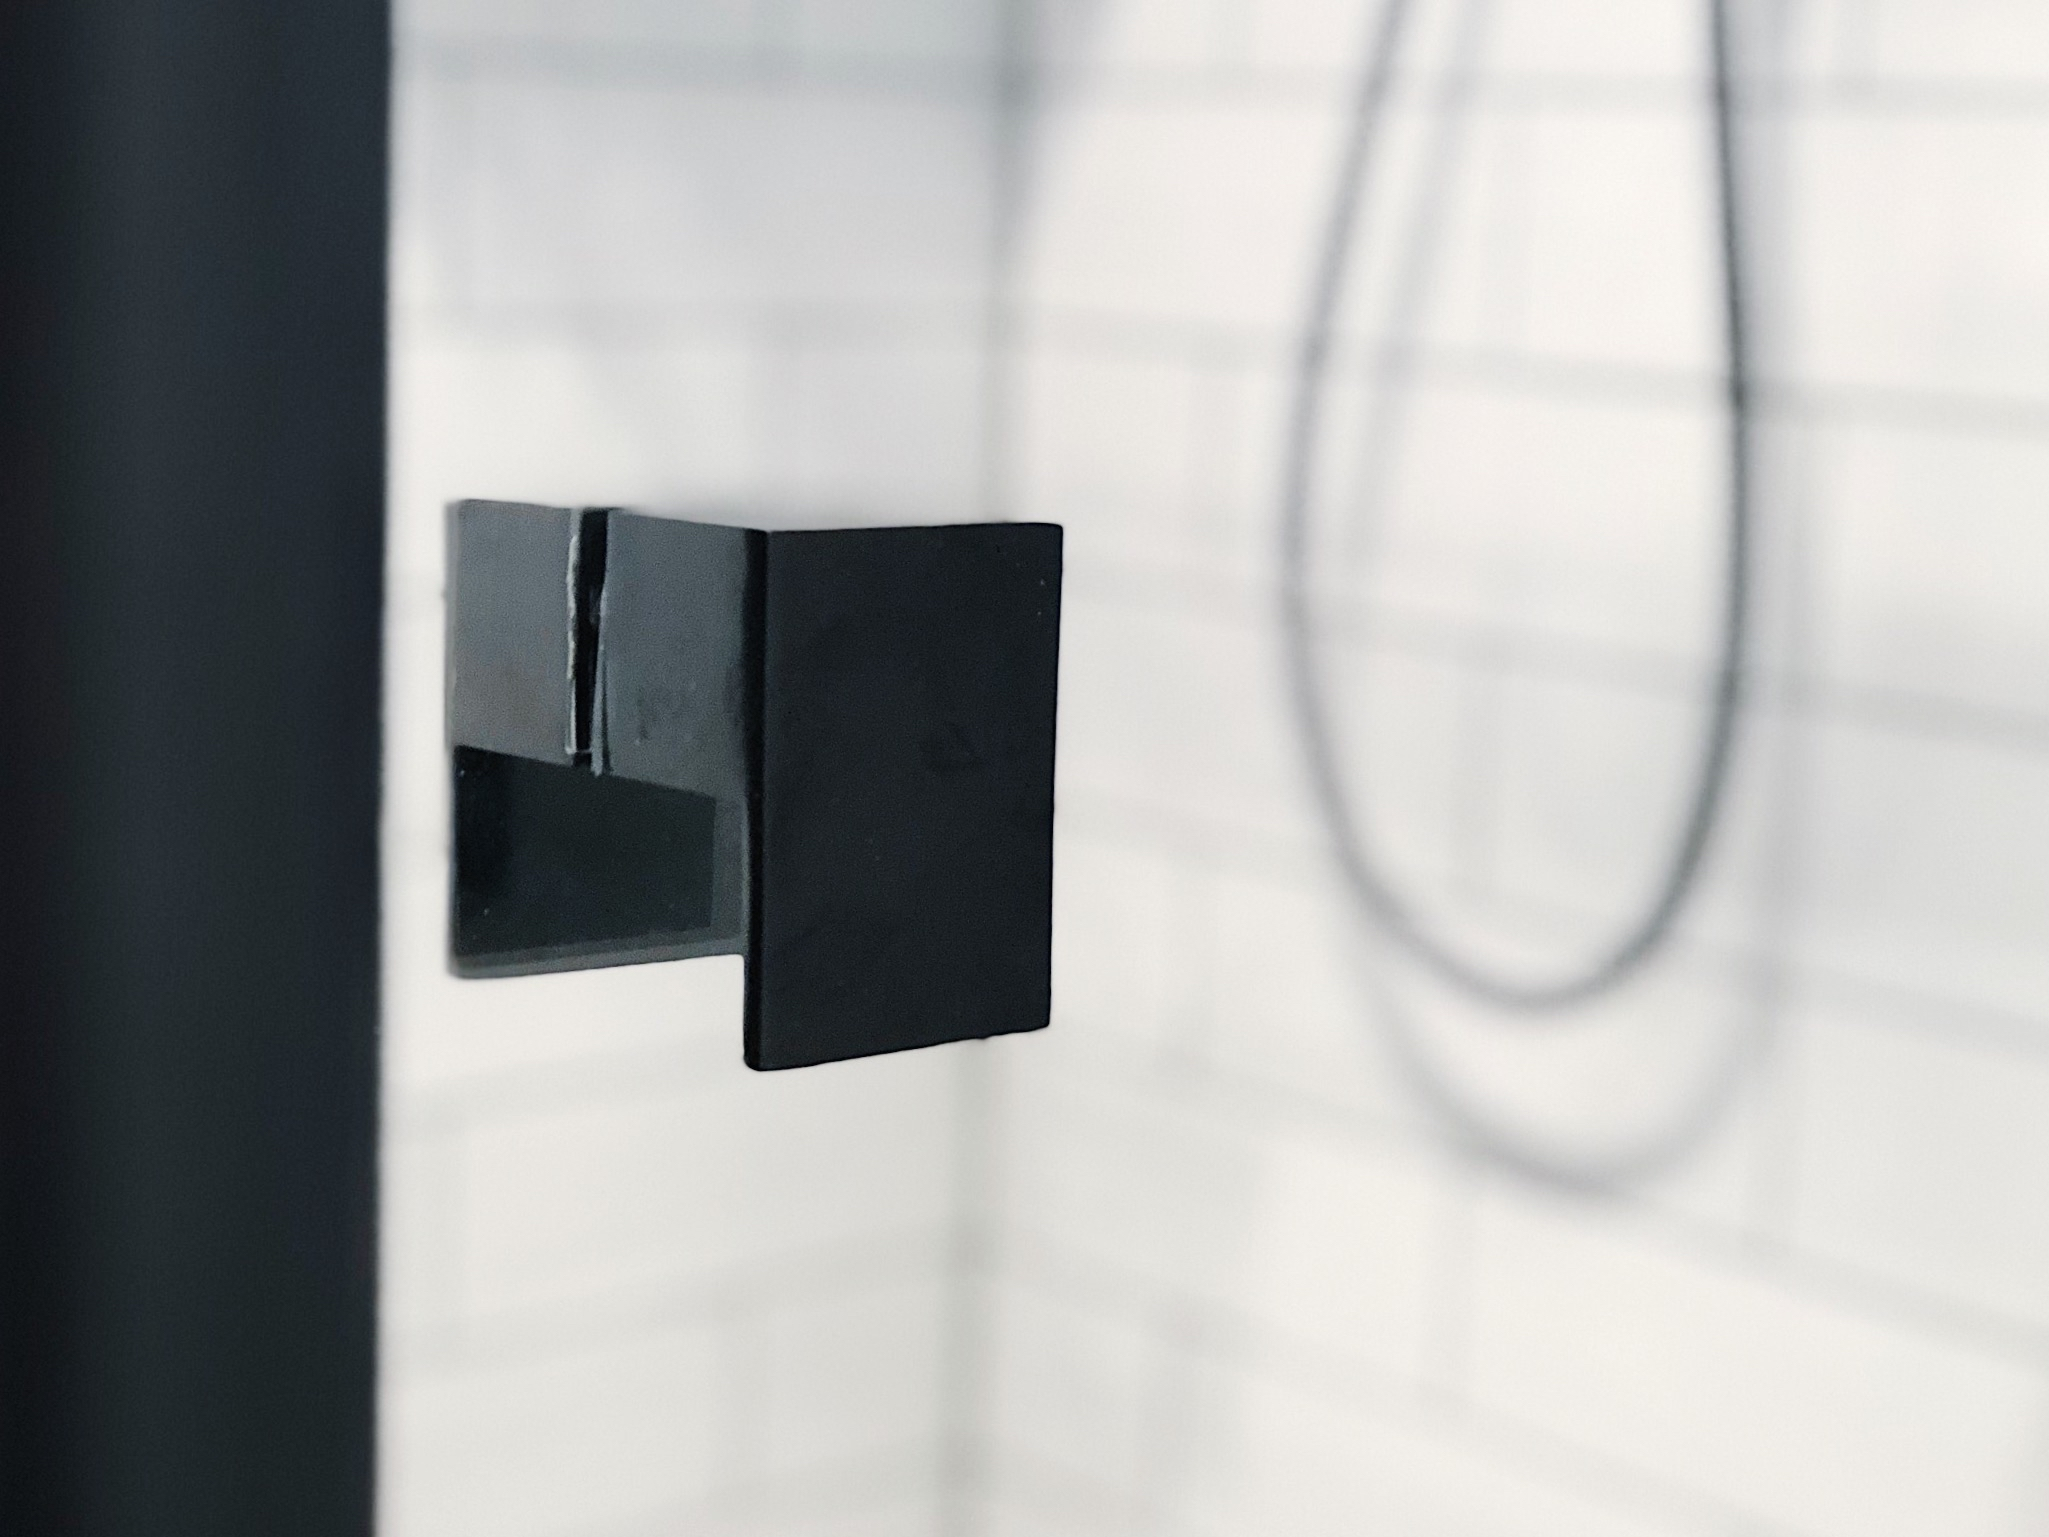 Pearson + Project The Reno Race The Rookies Bathroom Monochrome Subway Tiles Black Shower Frame.jpg